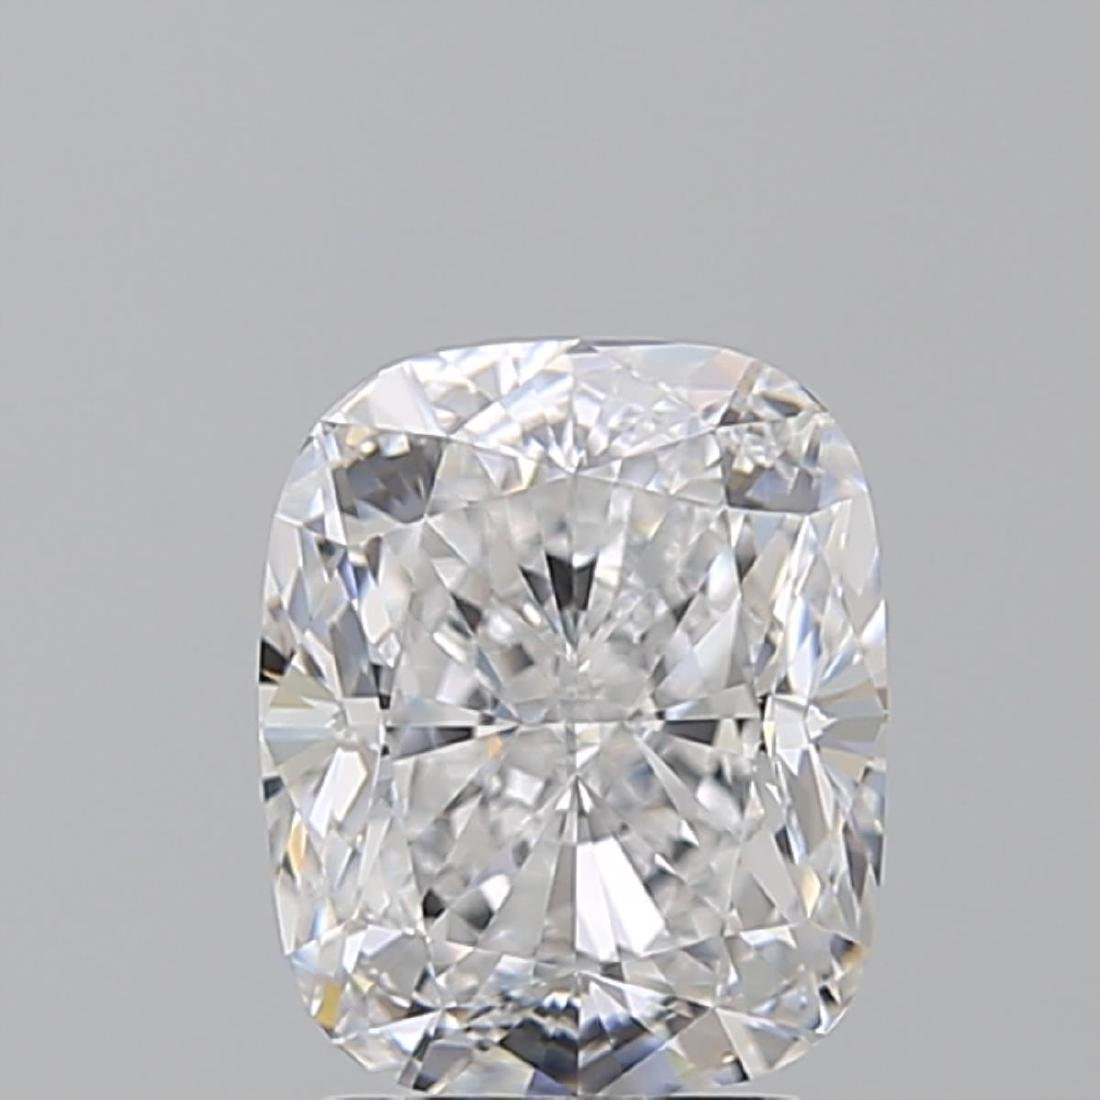 2.60 ct, Color D/VVS2, Cushion cut Diamond - 2